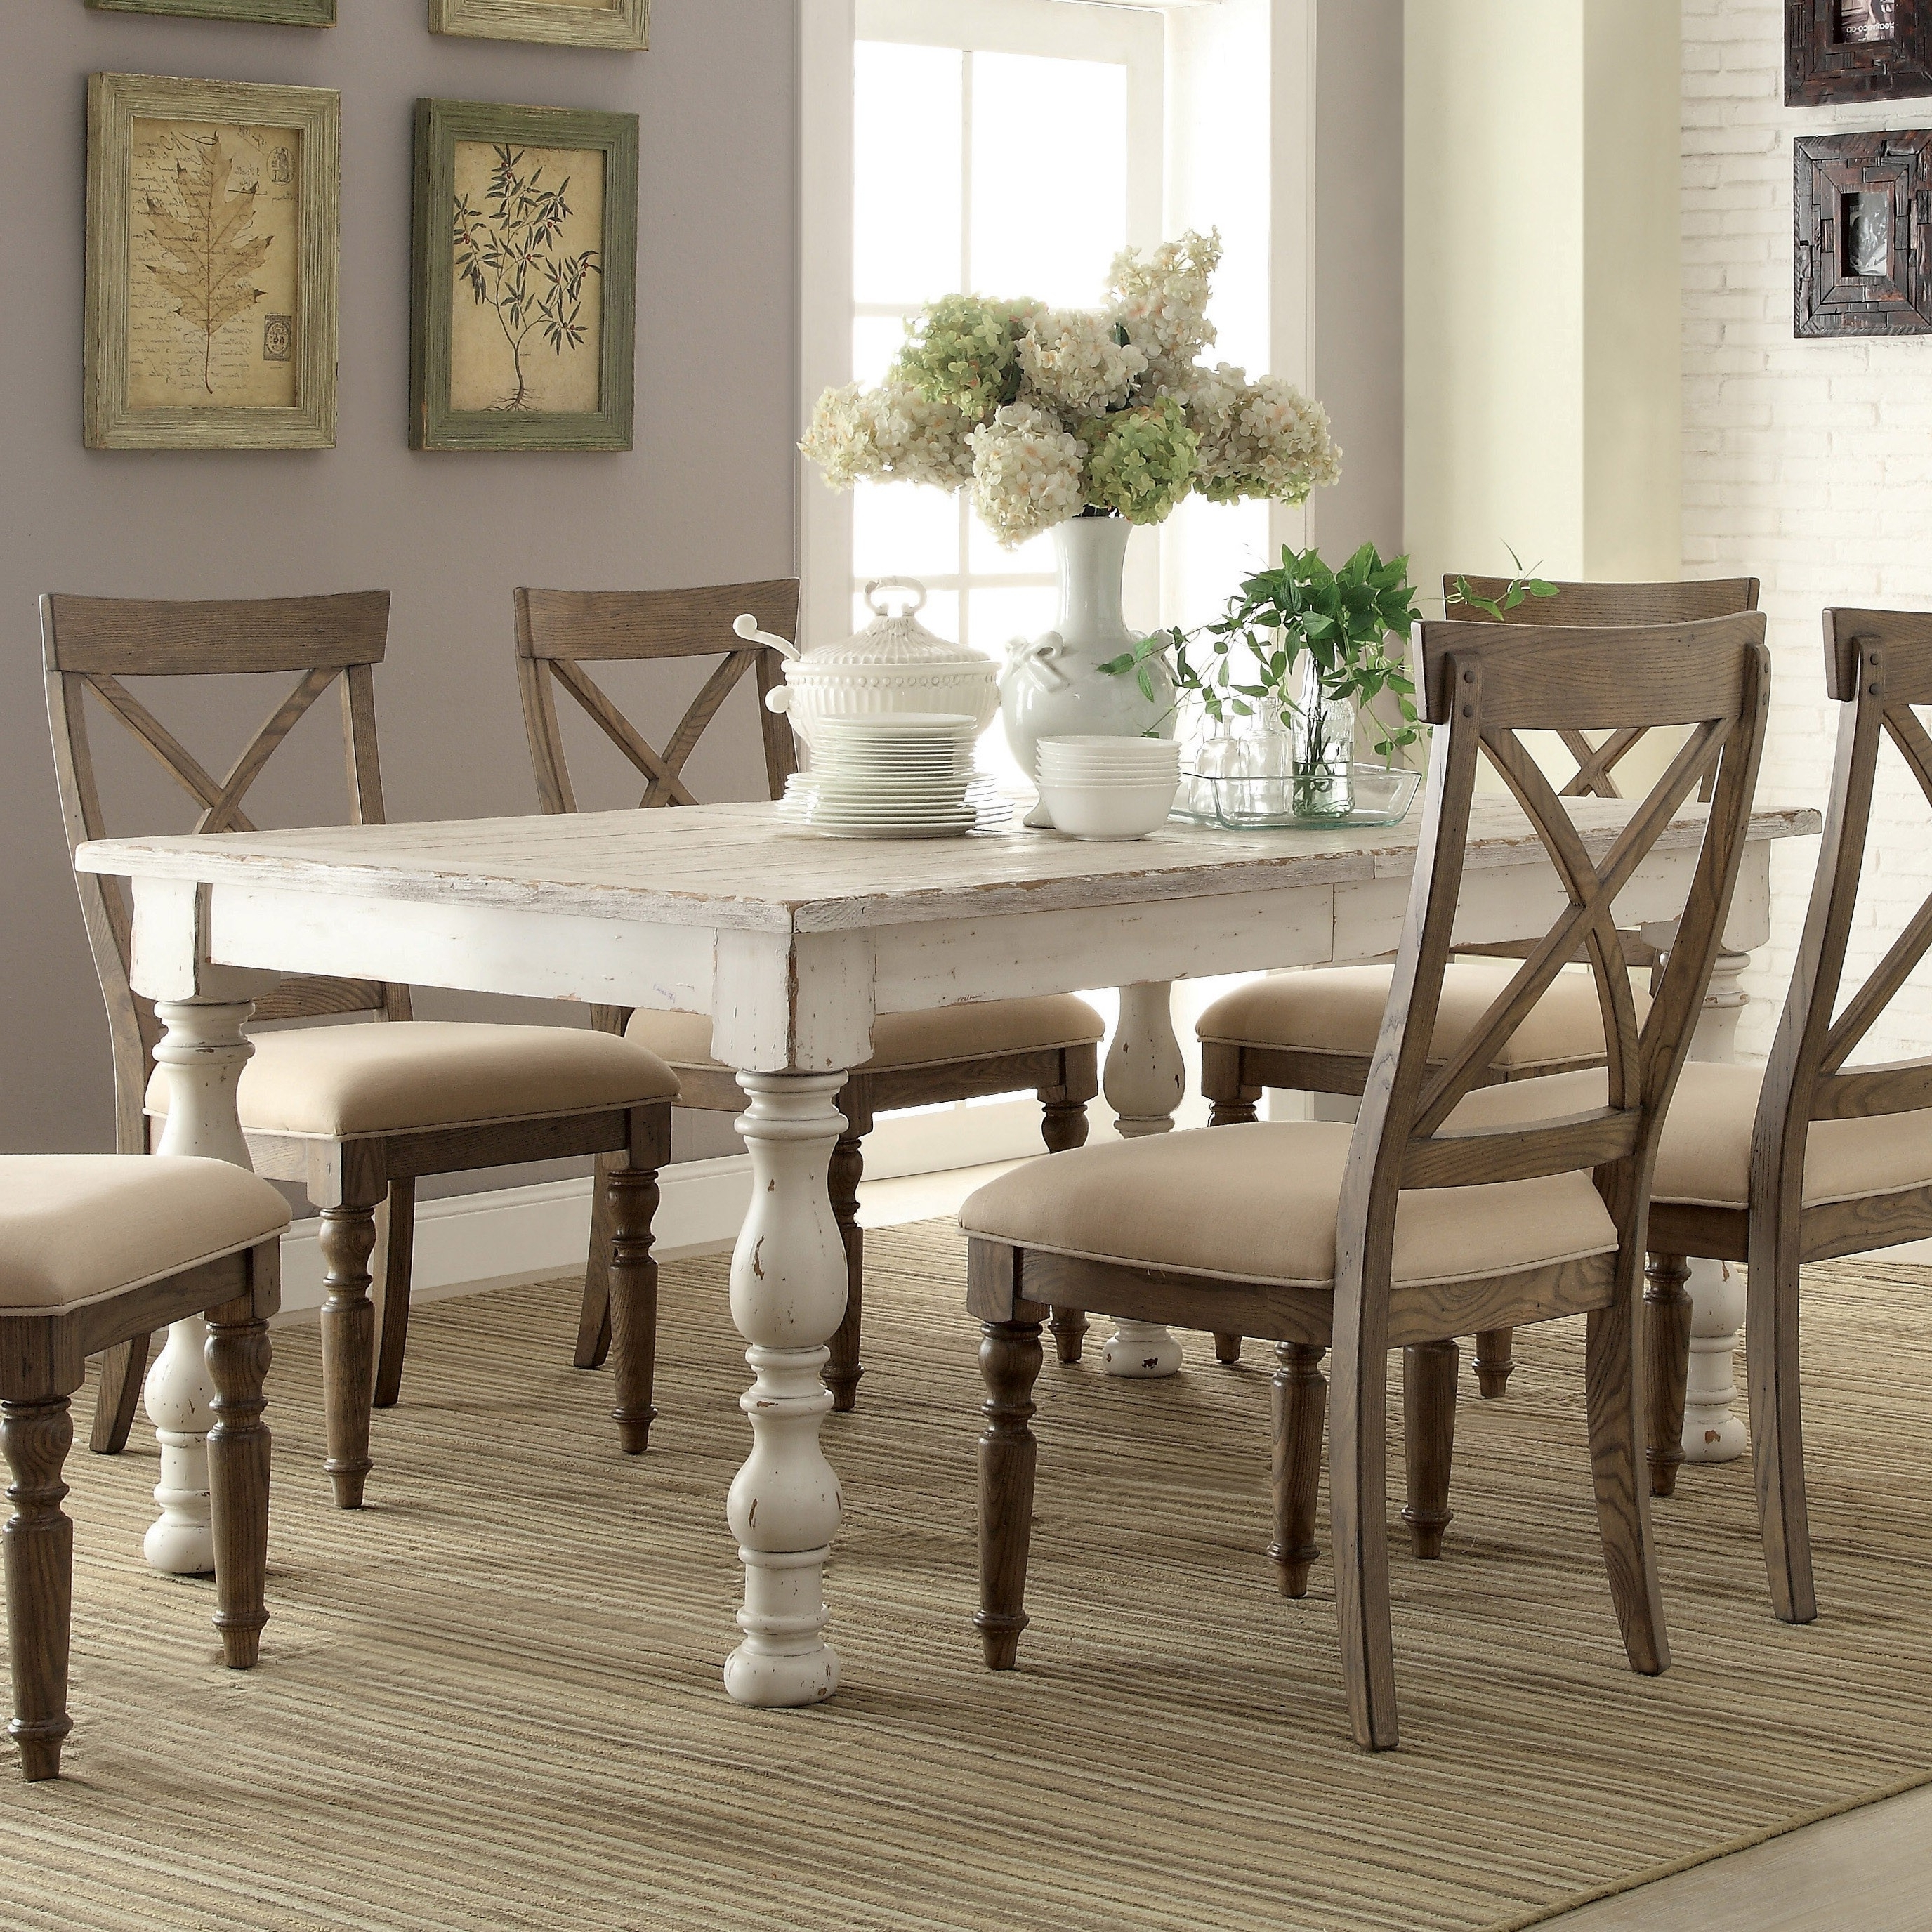 Dark Wood Dining Tables And Chairs For Fashionable High End Dining Tables & Kitchen Table Sets (View 15 of 25)